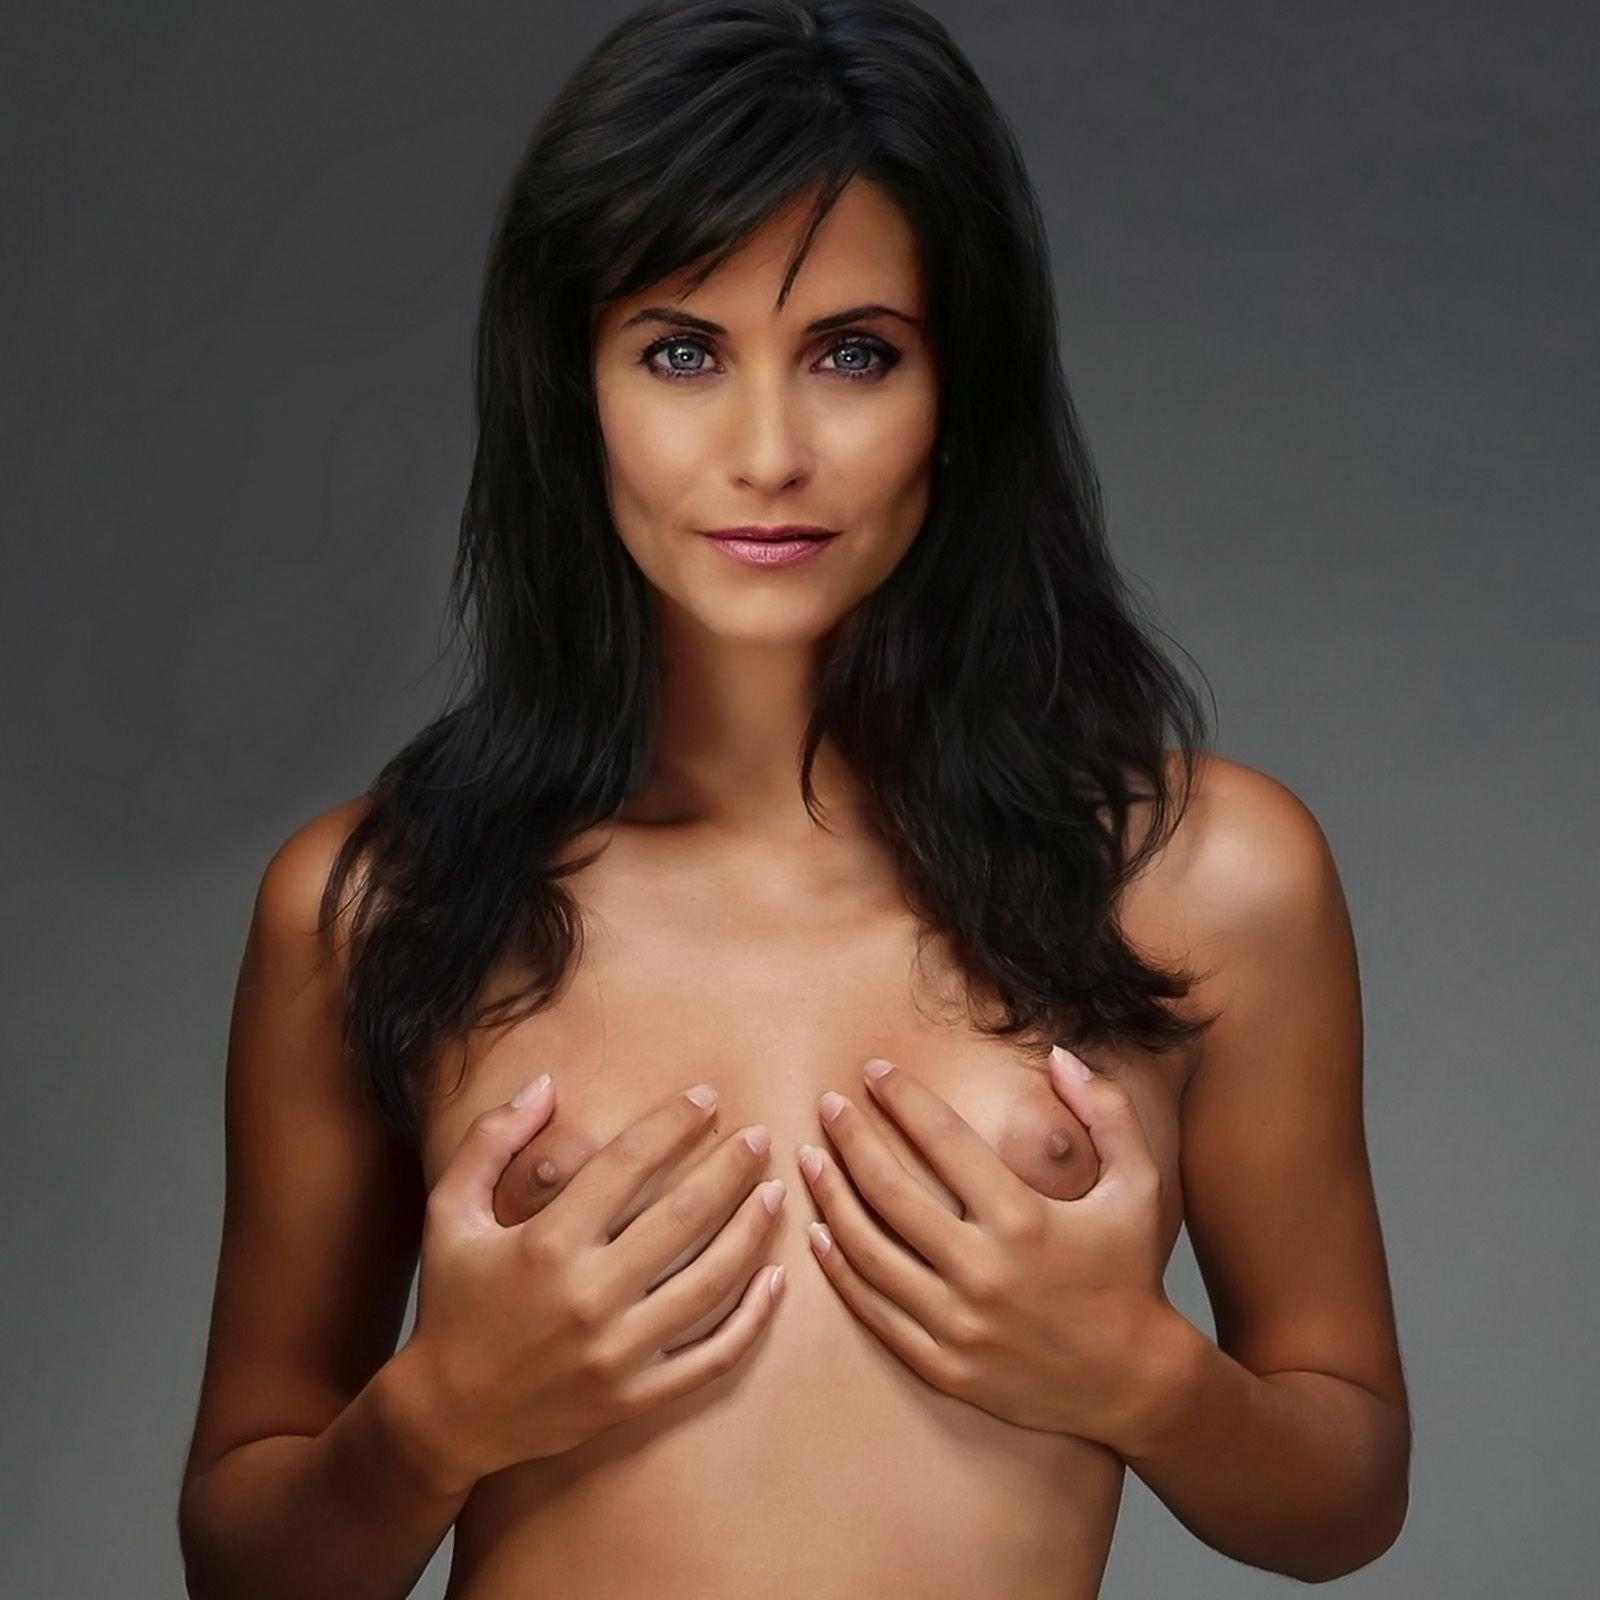 Friends star courteney cox in an all nude photos